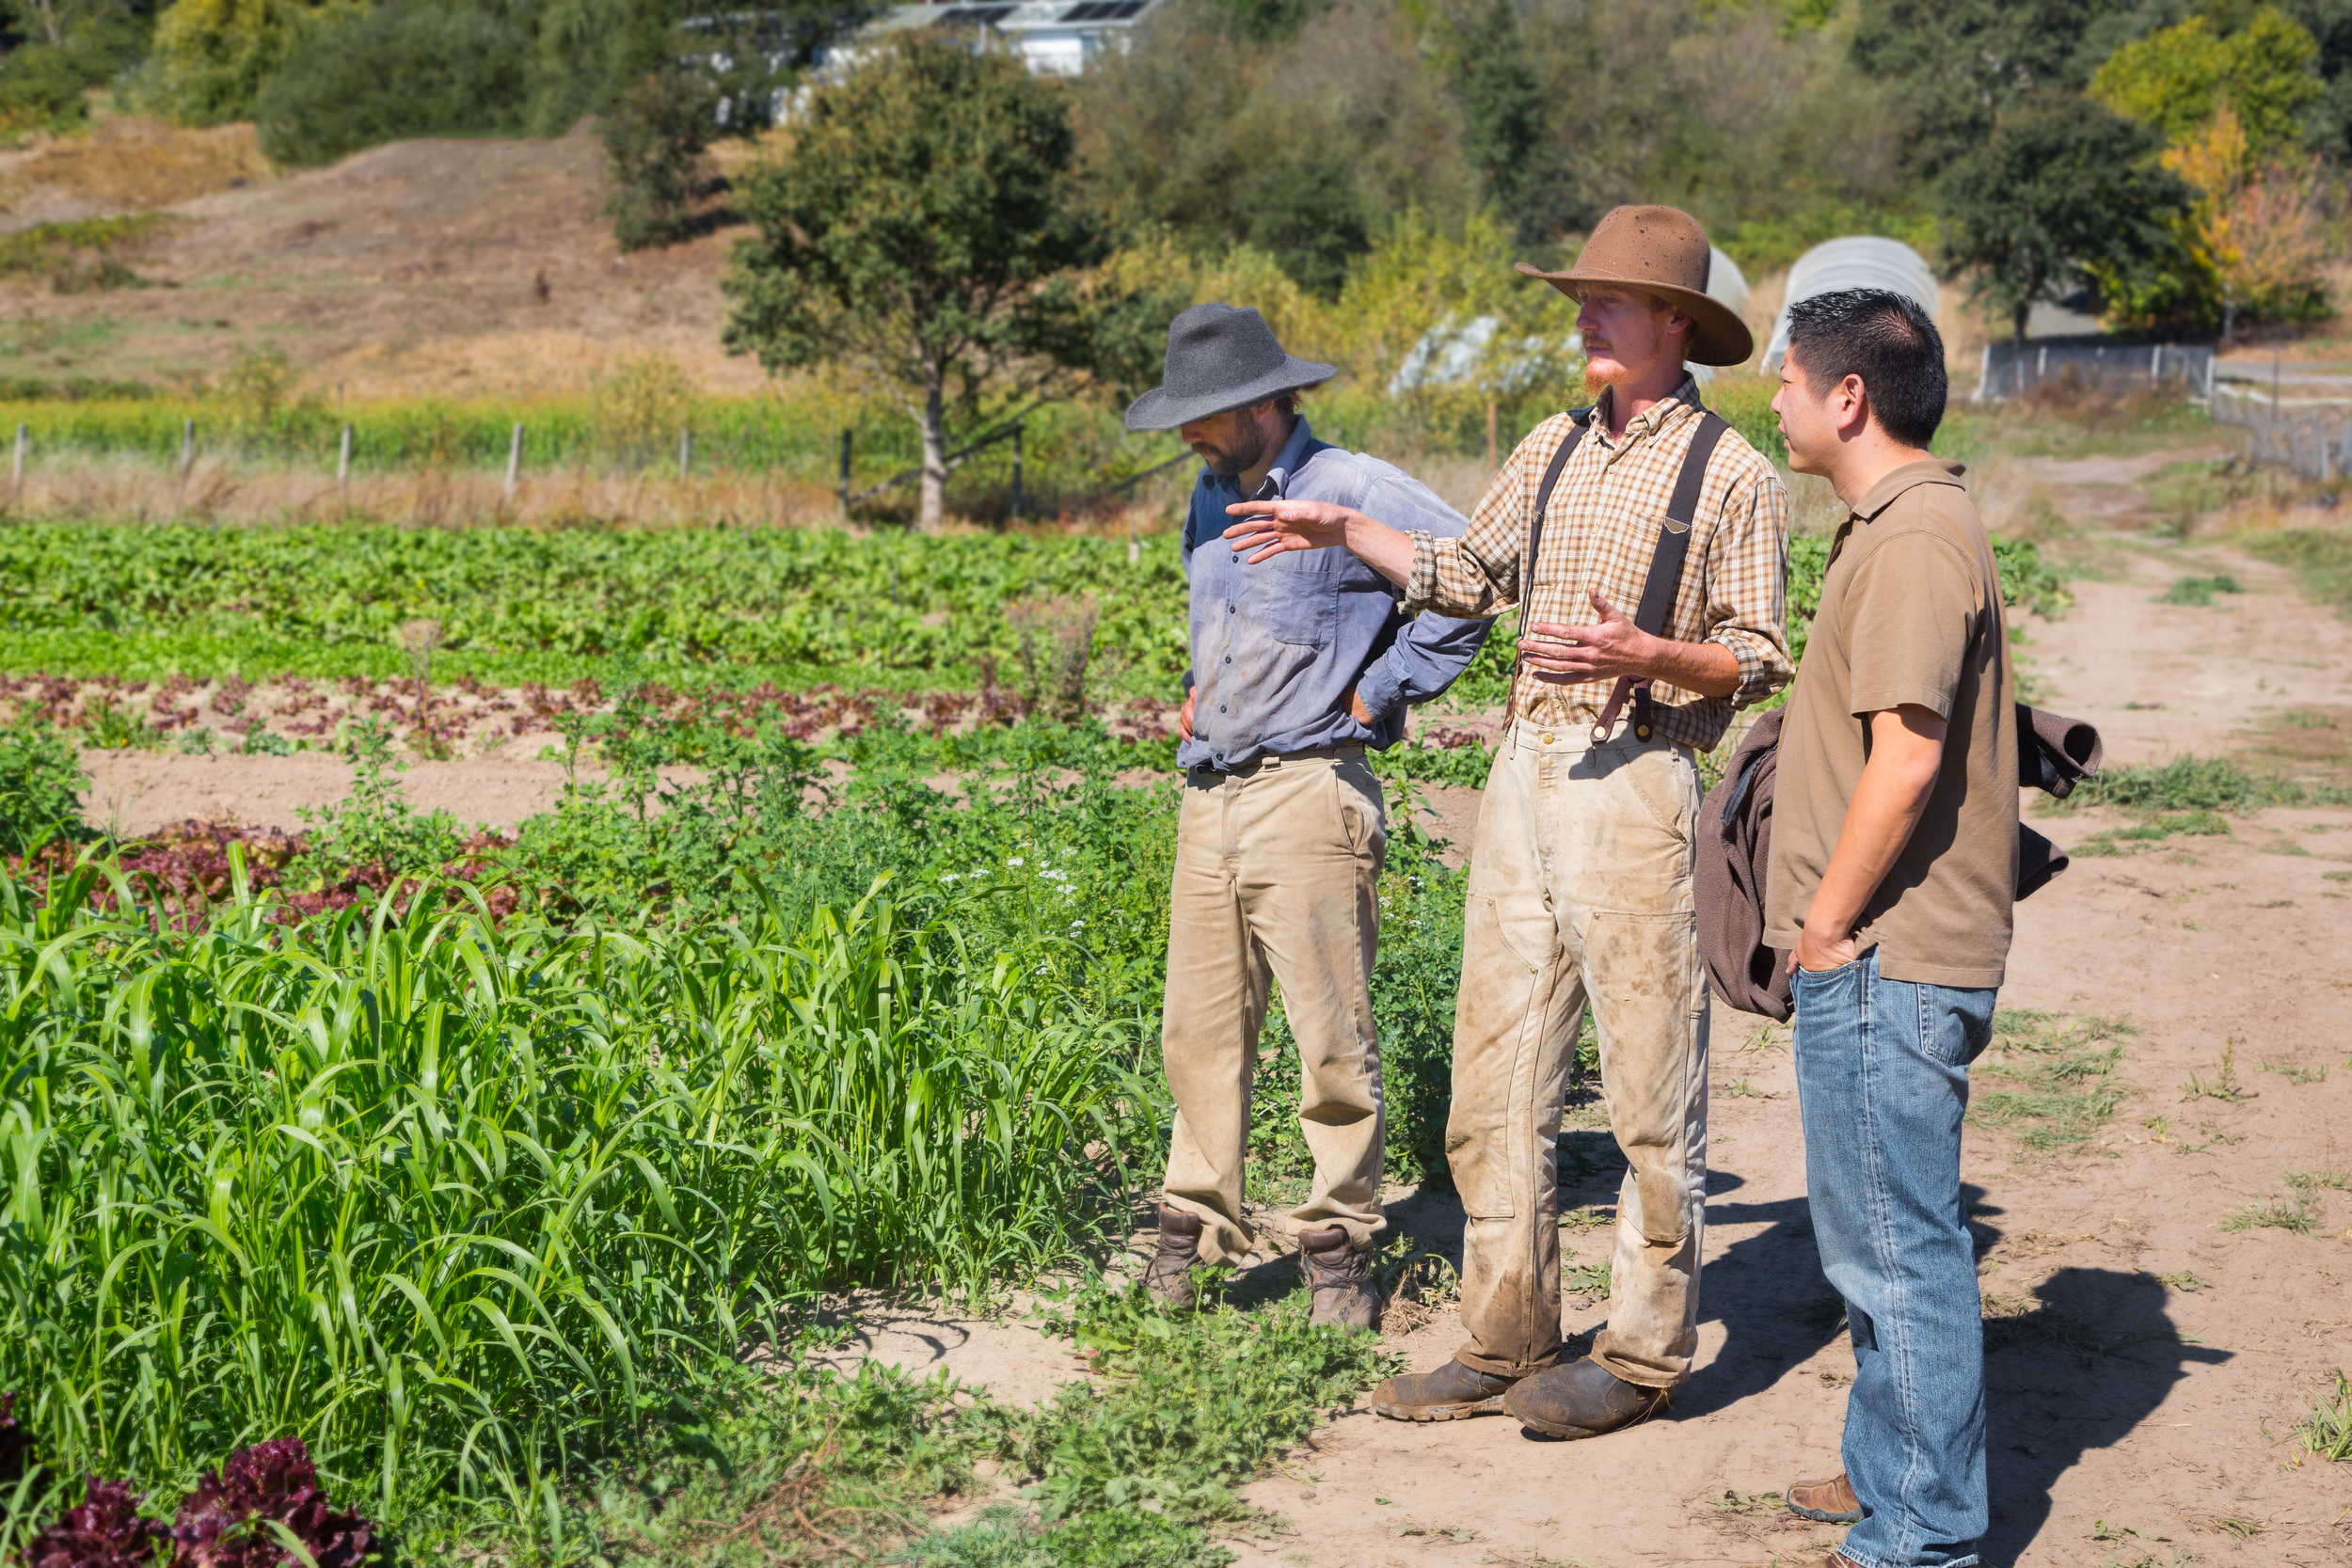 Anthony Chang (left) meeting with Farmers Ryan and Adam of New Family Farm. Photo by Jonathan Fong.